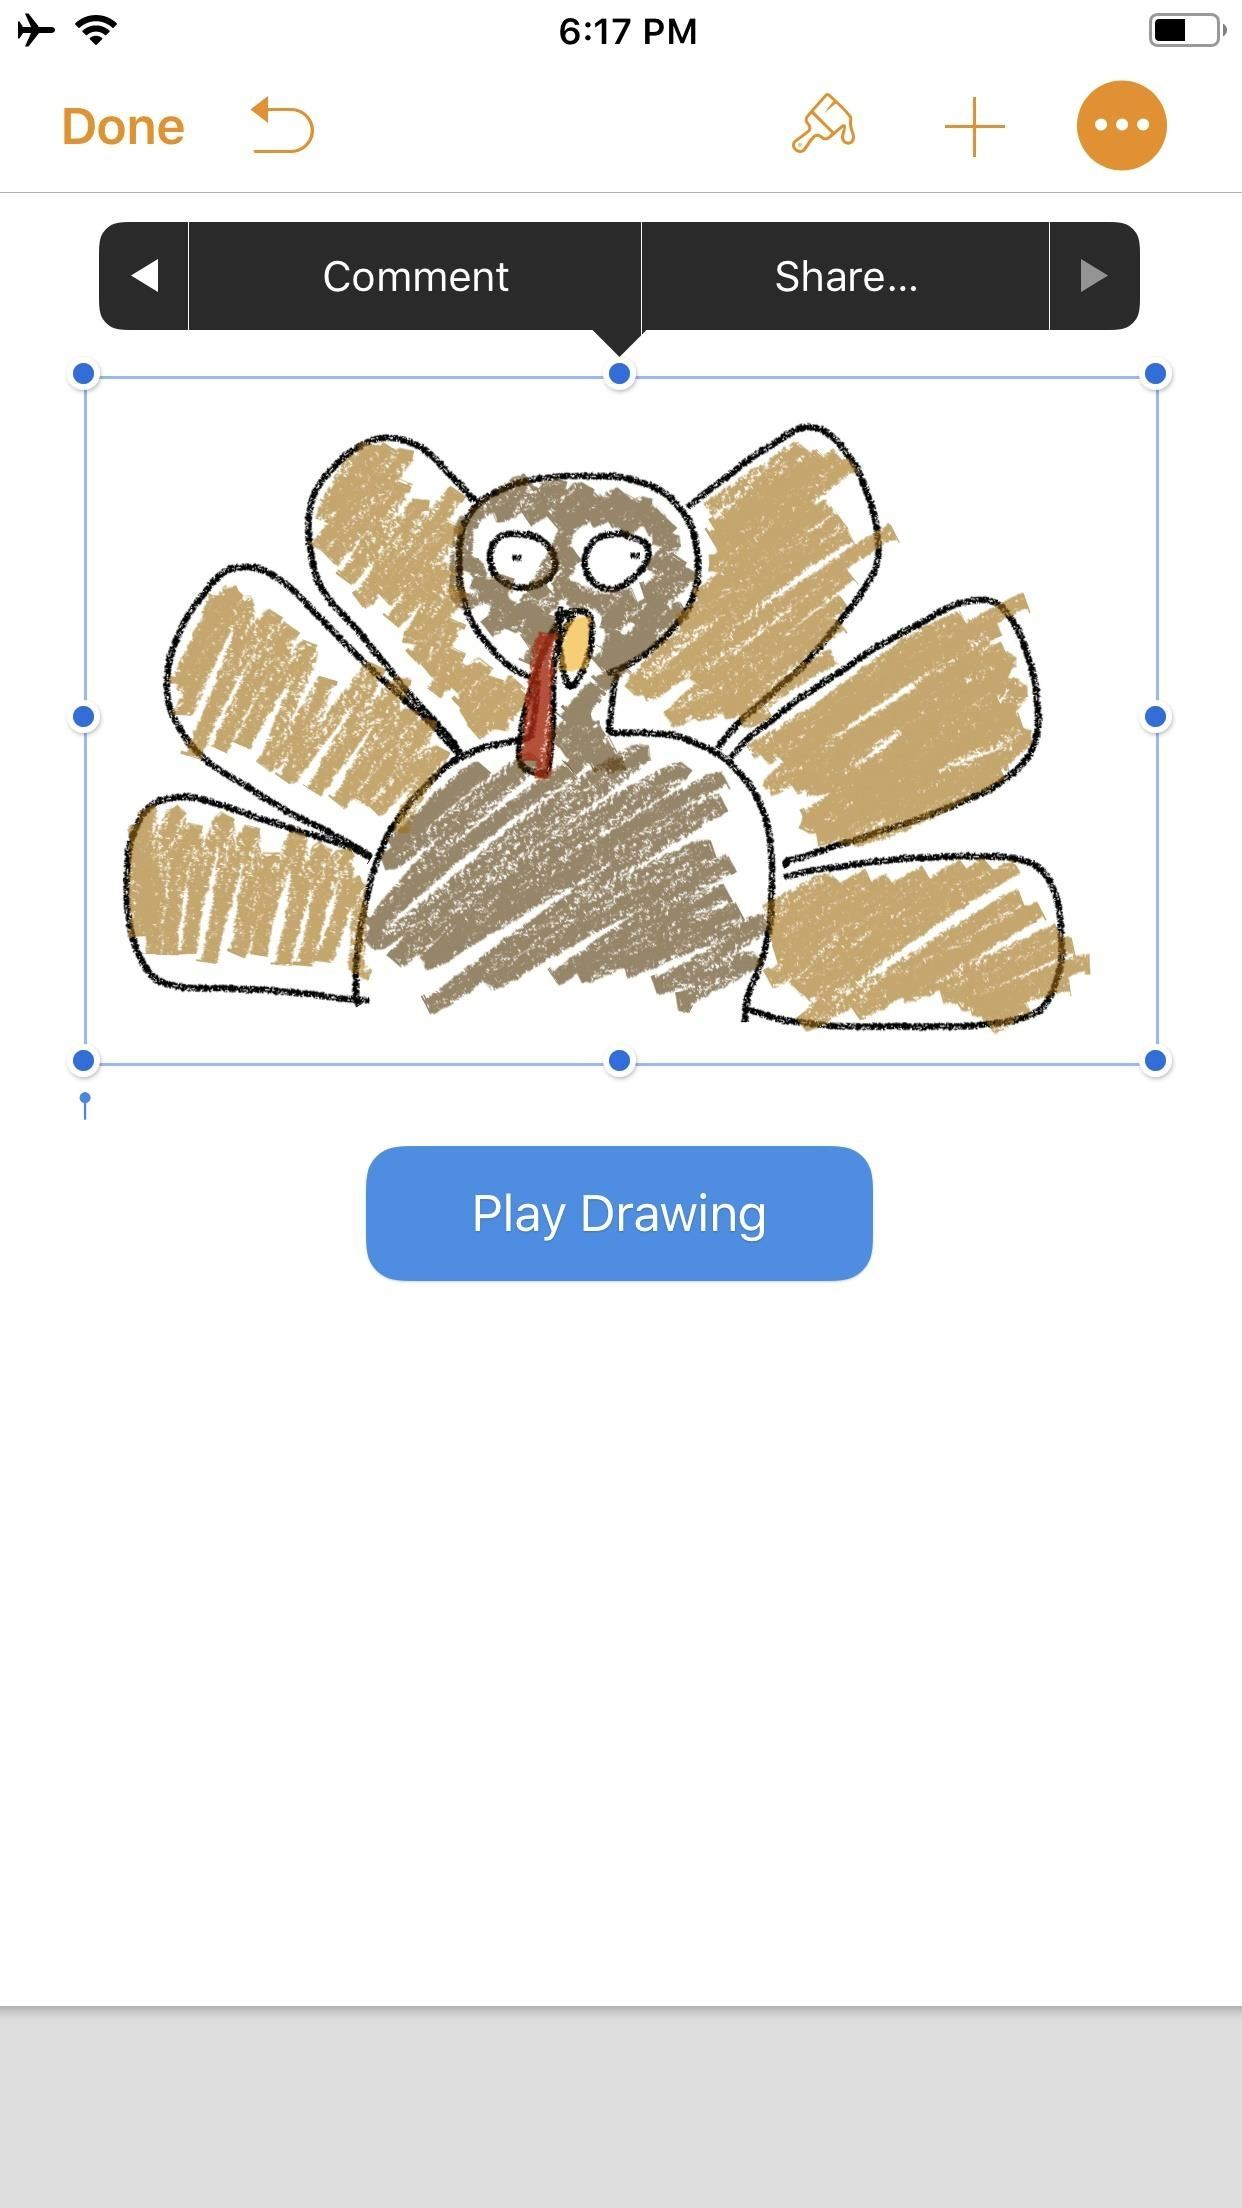 How to Animate & Share Drawings on Your iPhone Without Any Third-Party Apps